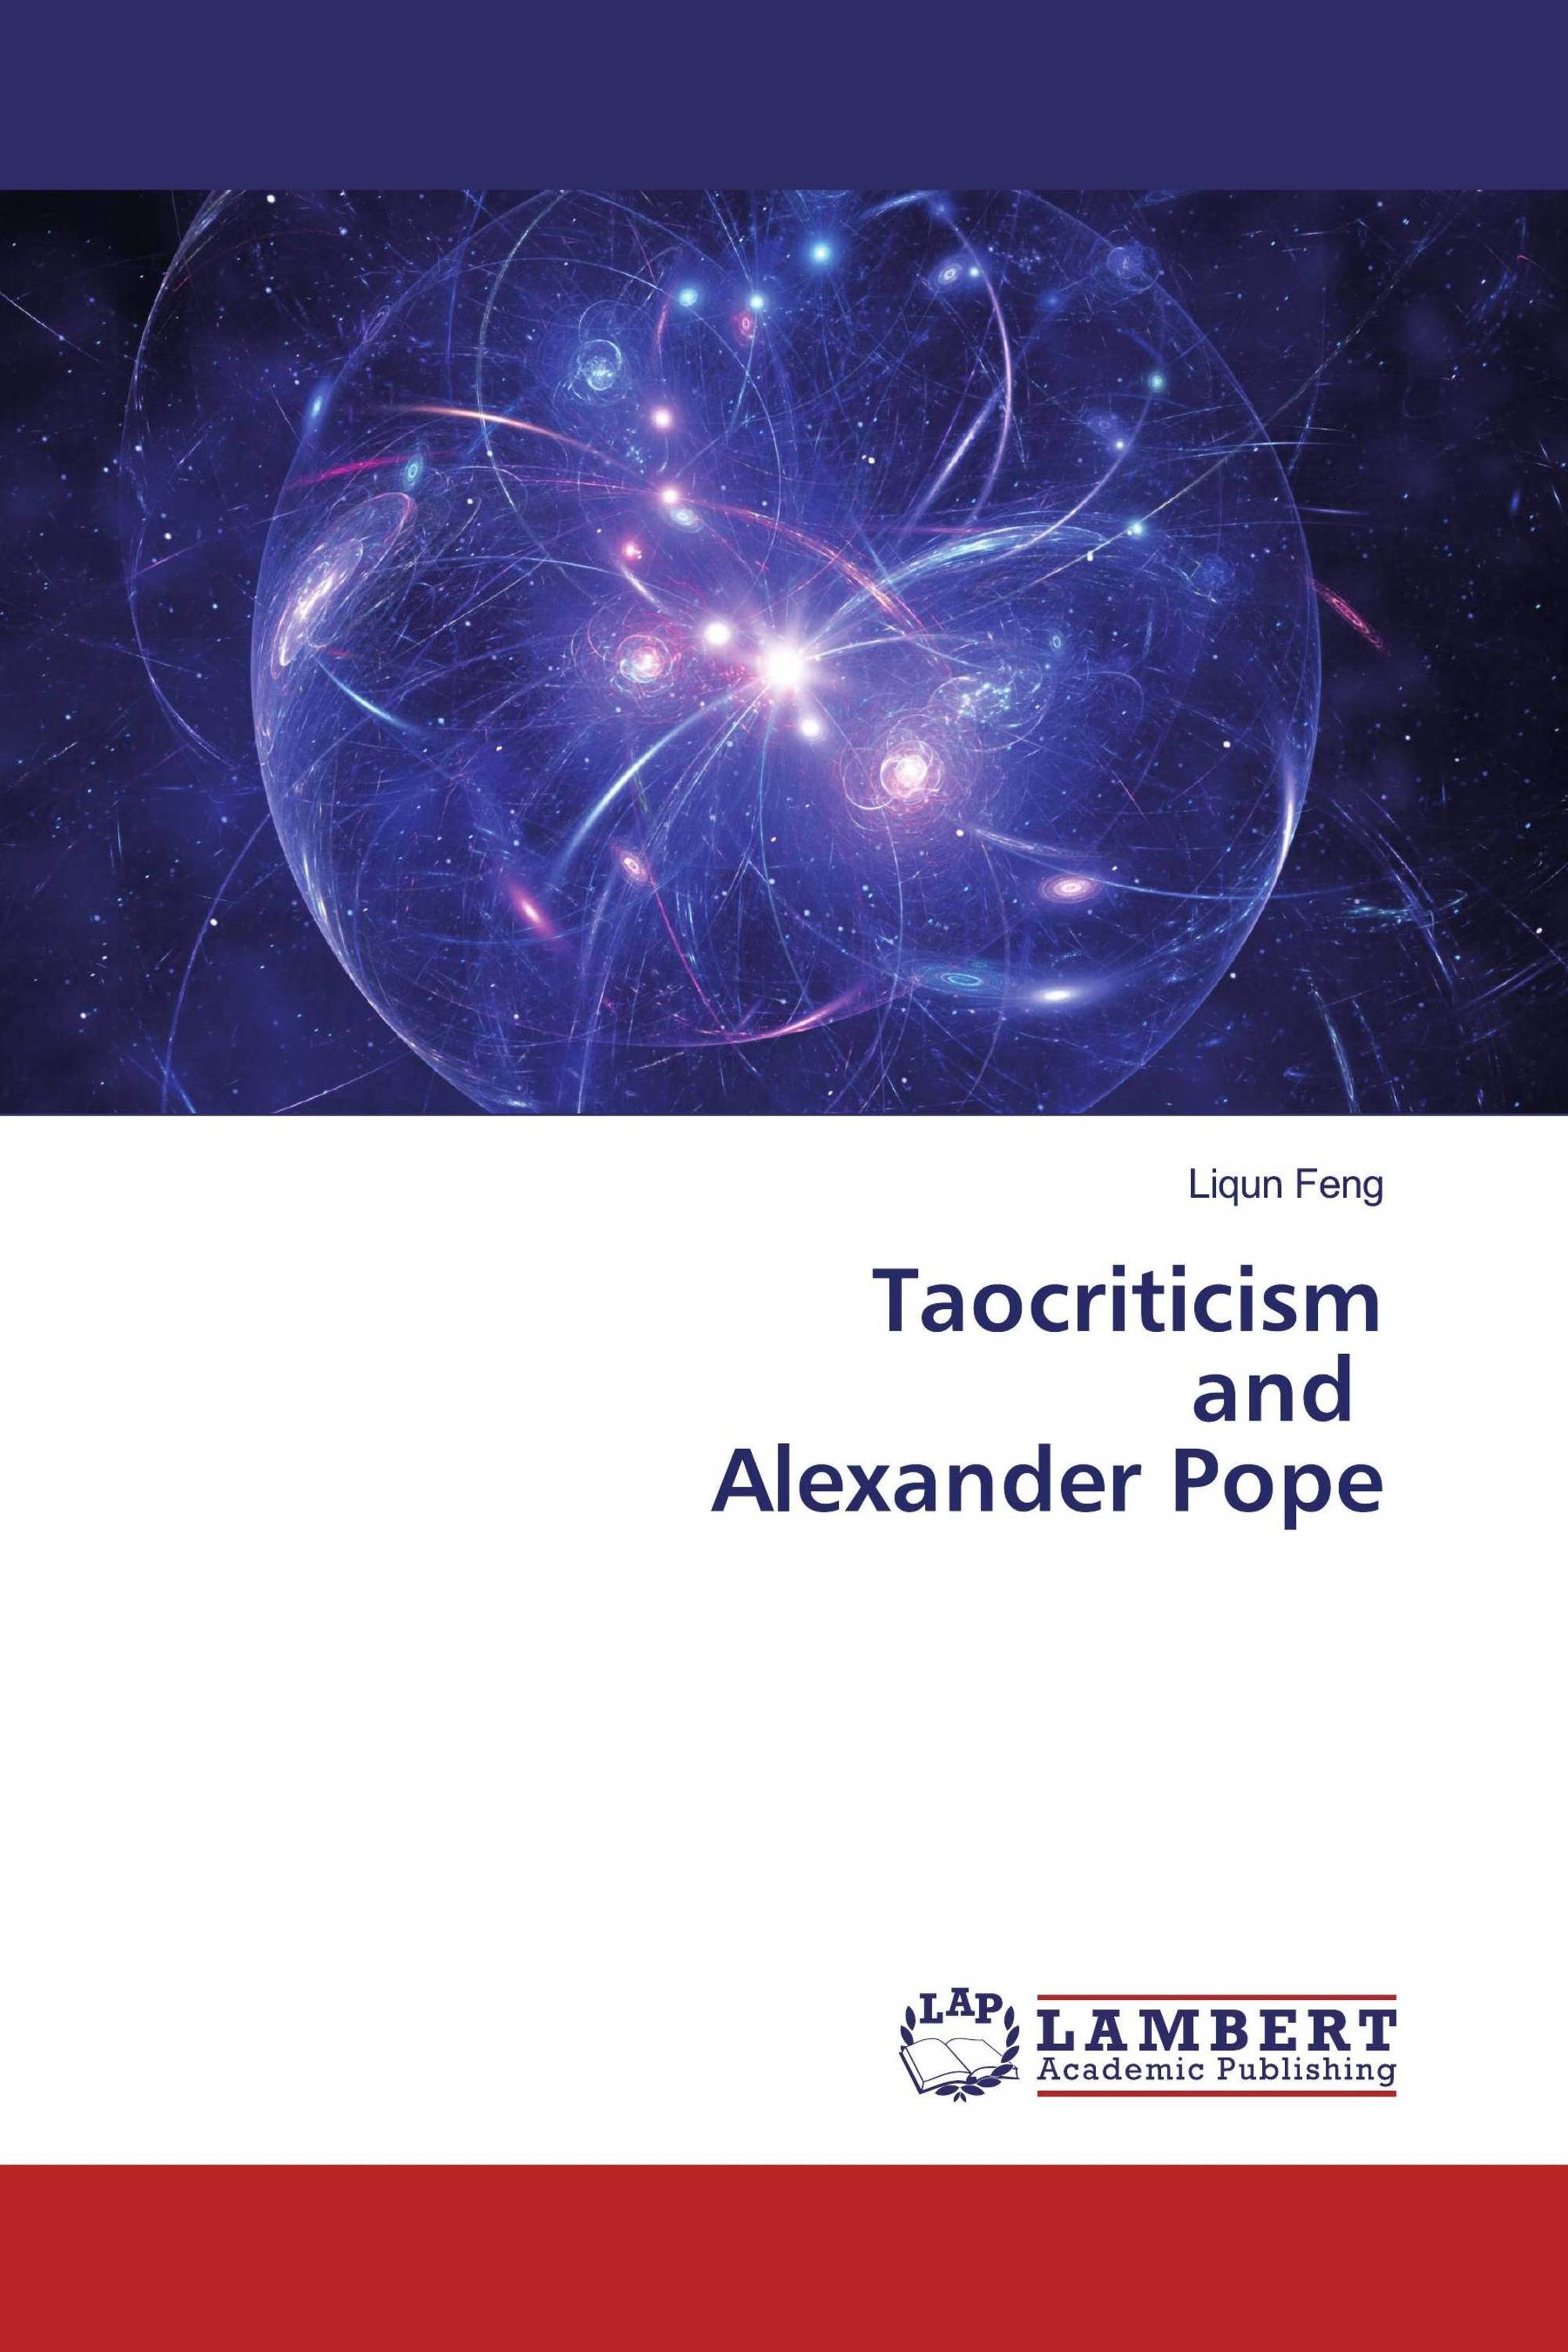 Taocriticism and Alexander Pope